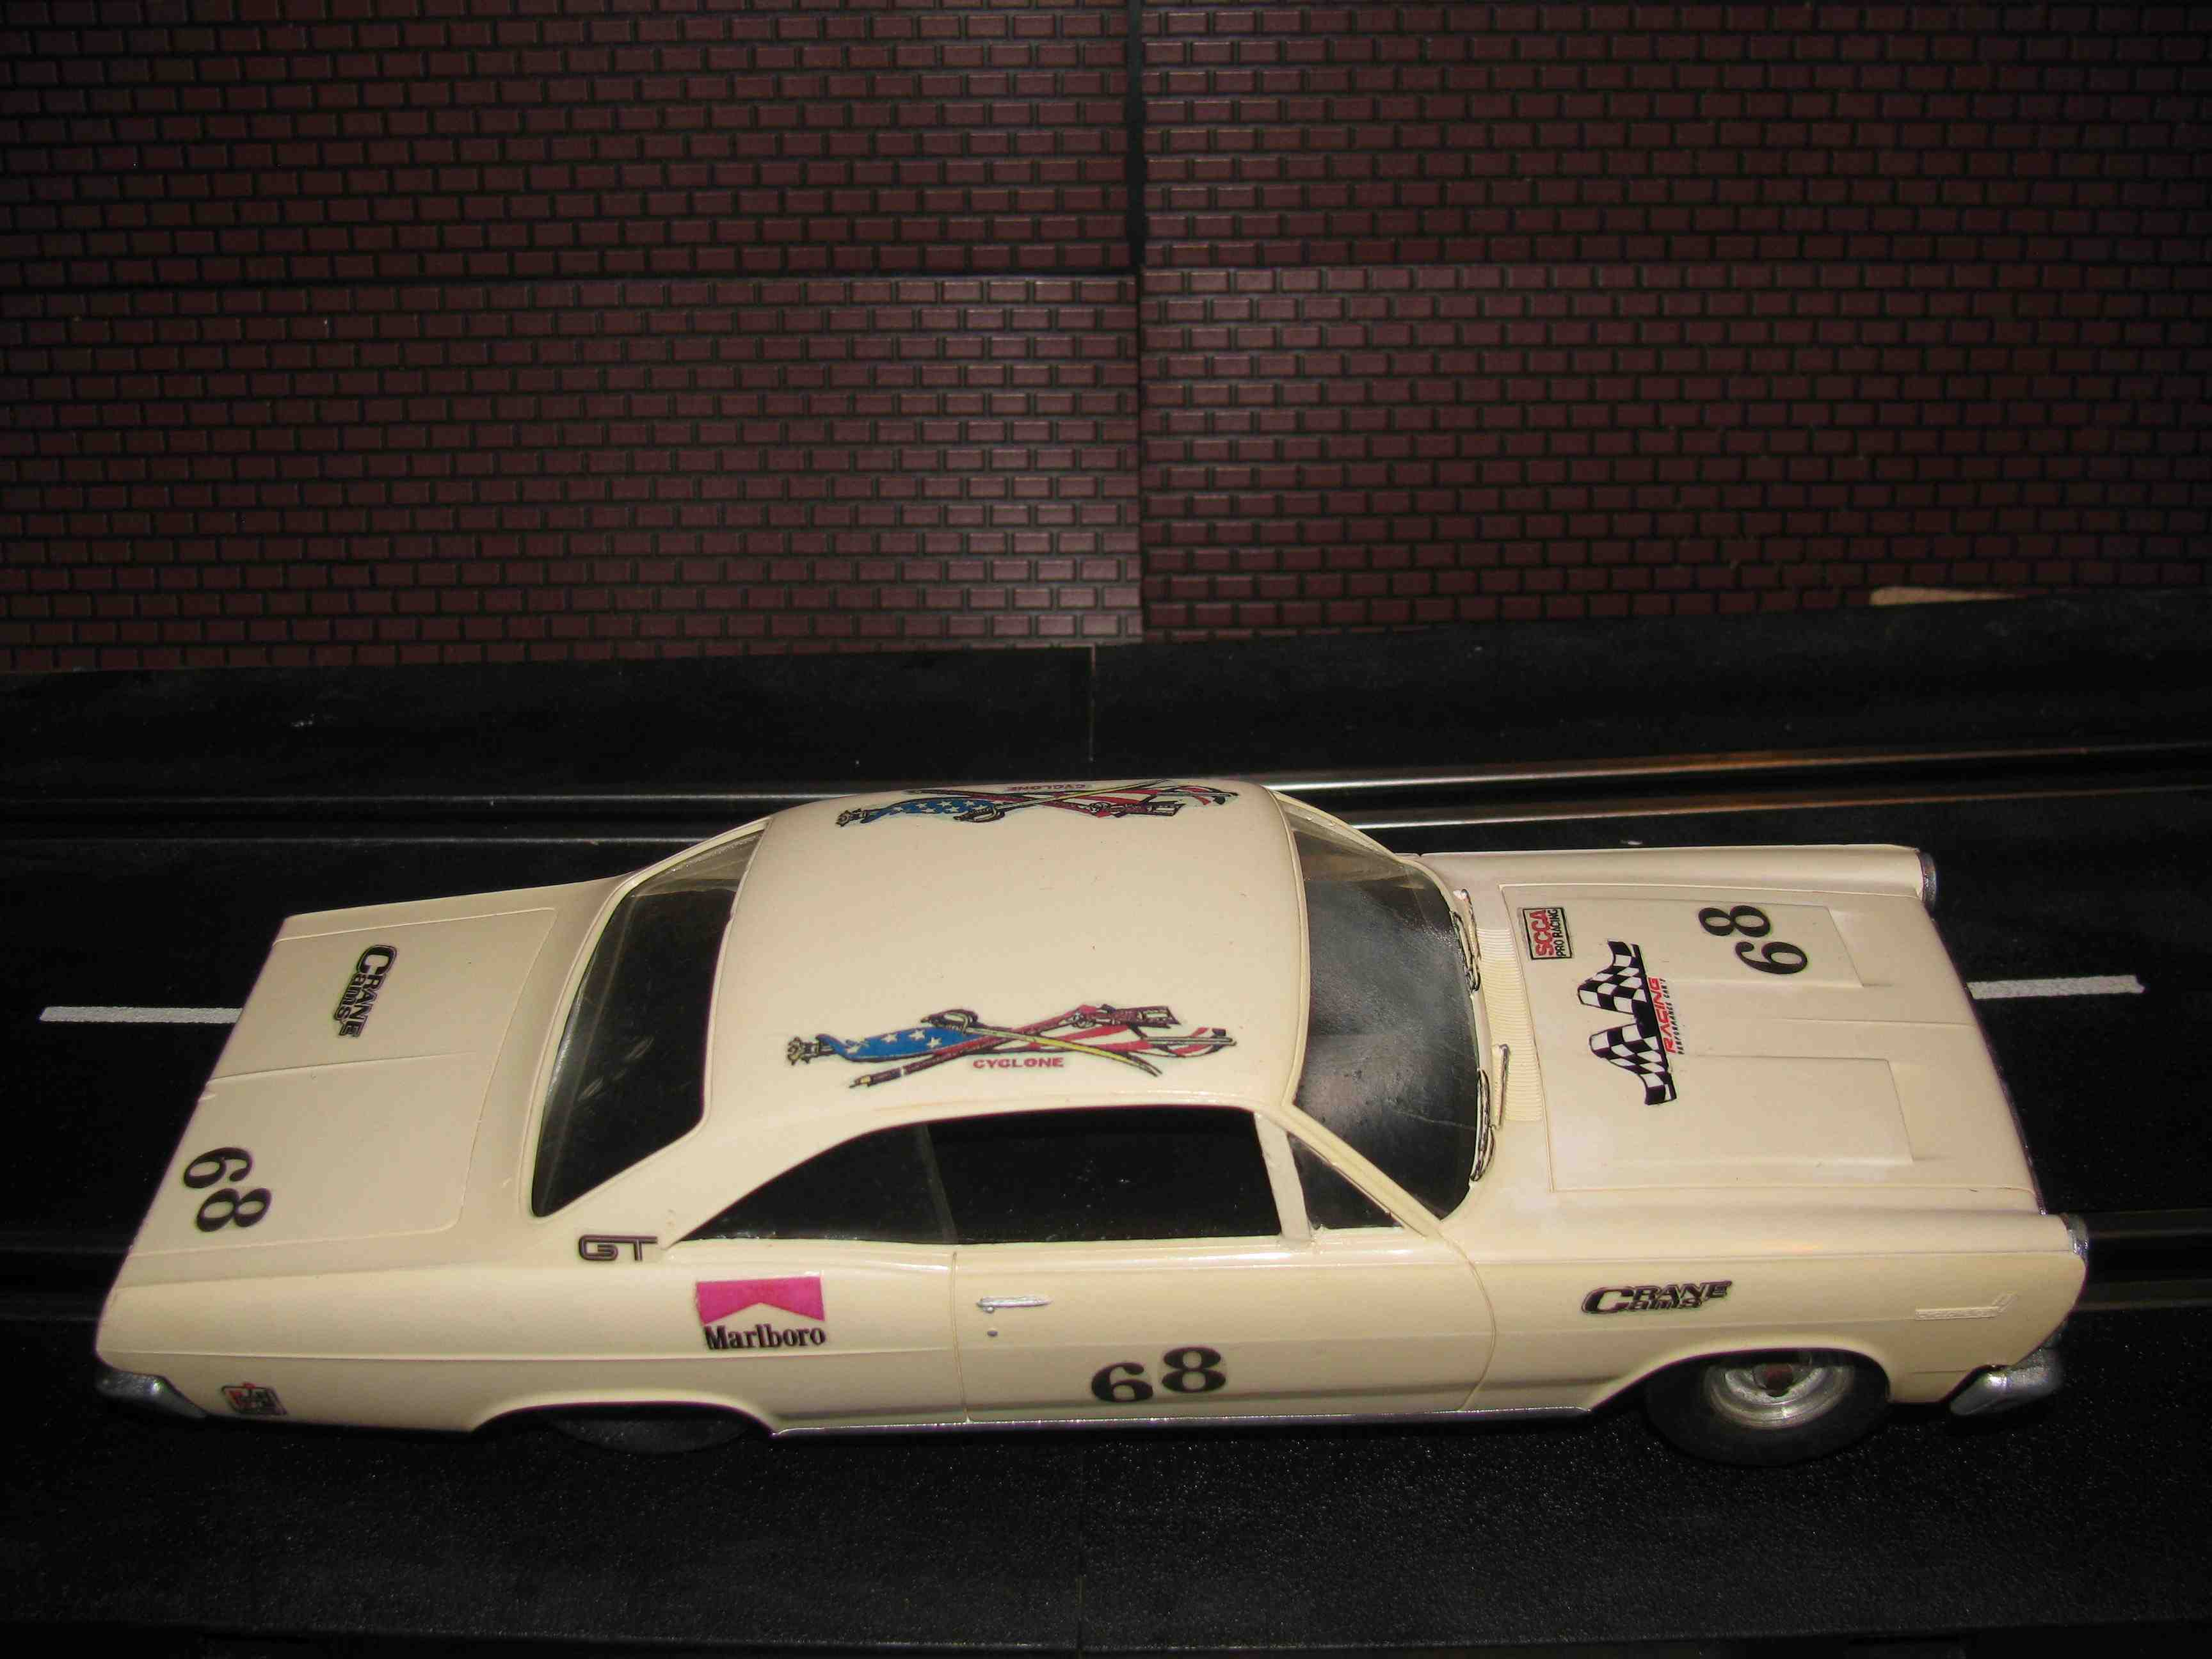 Extremely Rare 1966 Mercury Comet Cyclone Slot Car - 1/24 Scale